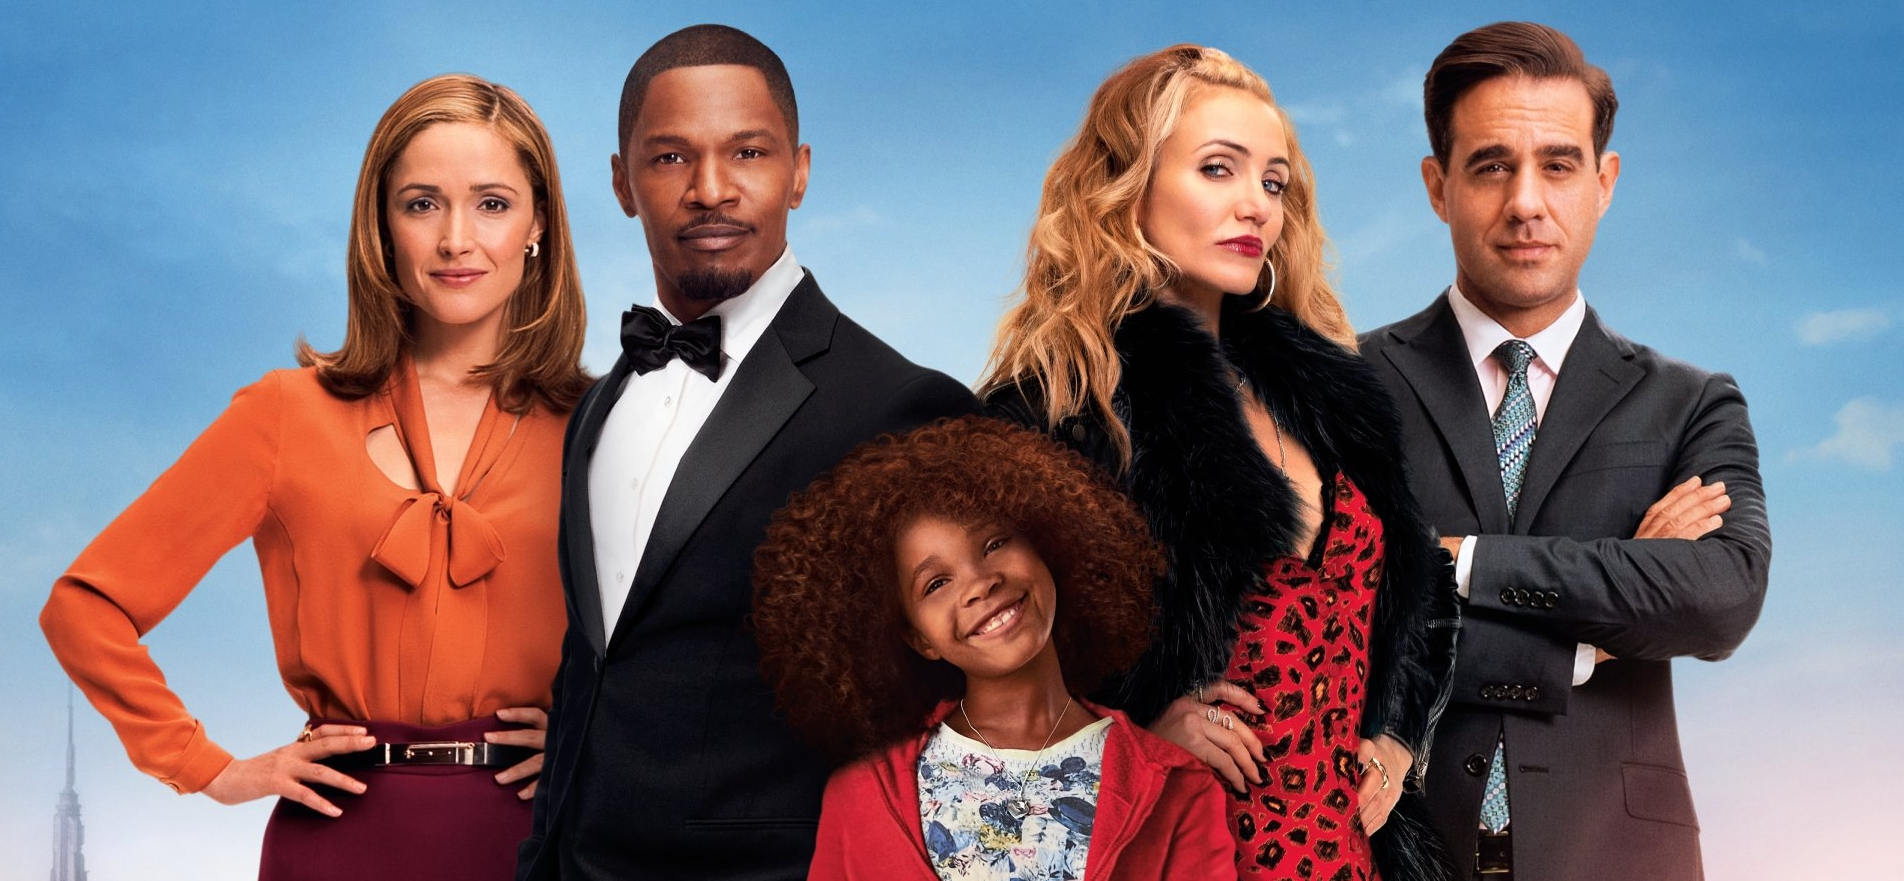 Review Annie 2014 I Am Your Target Demographic